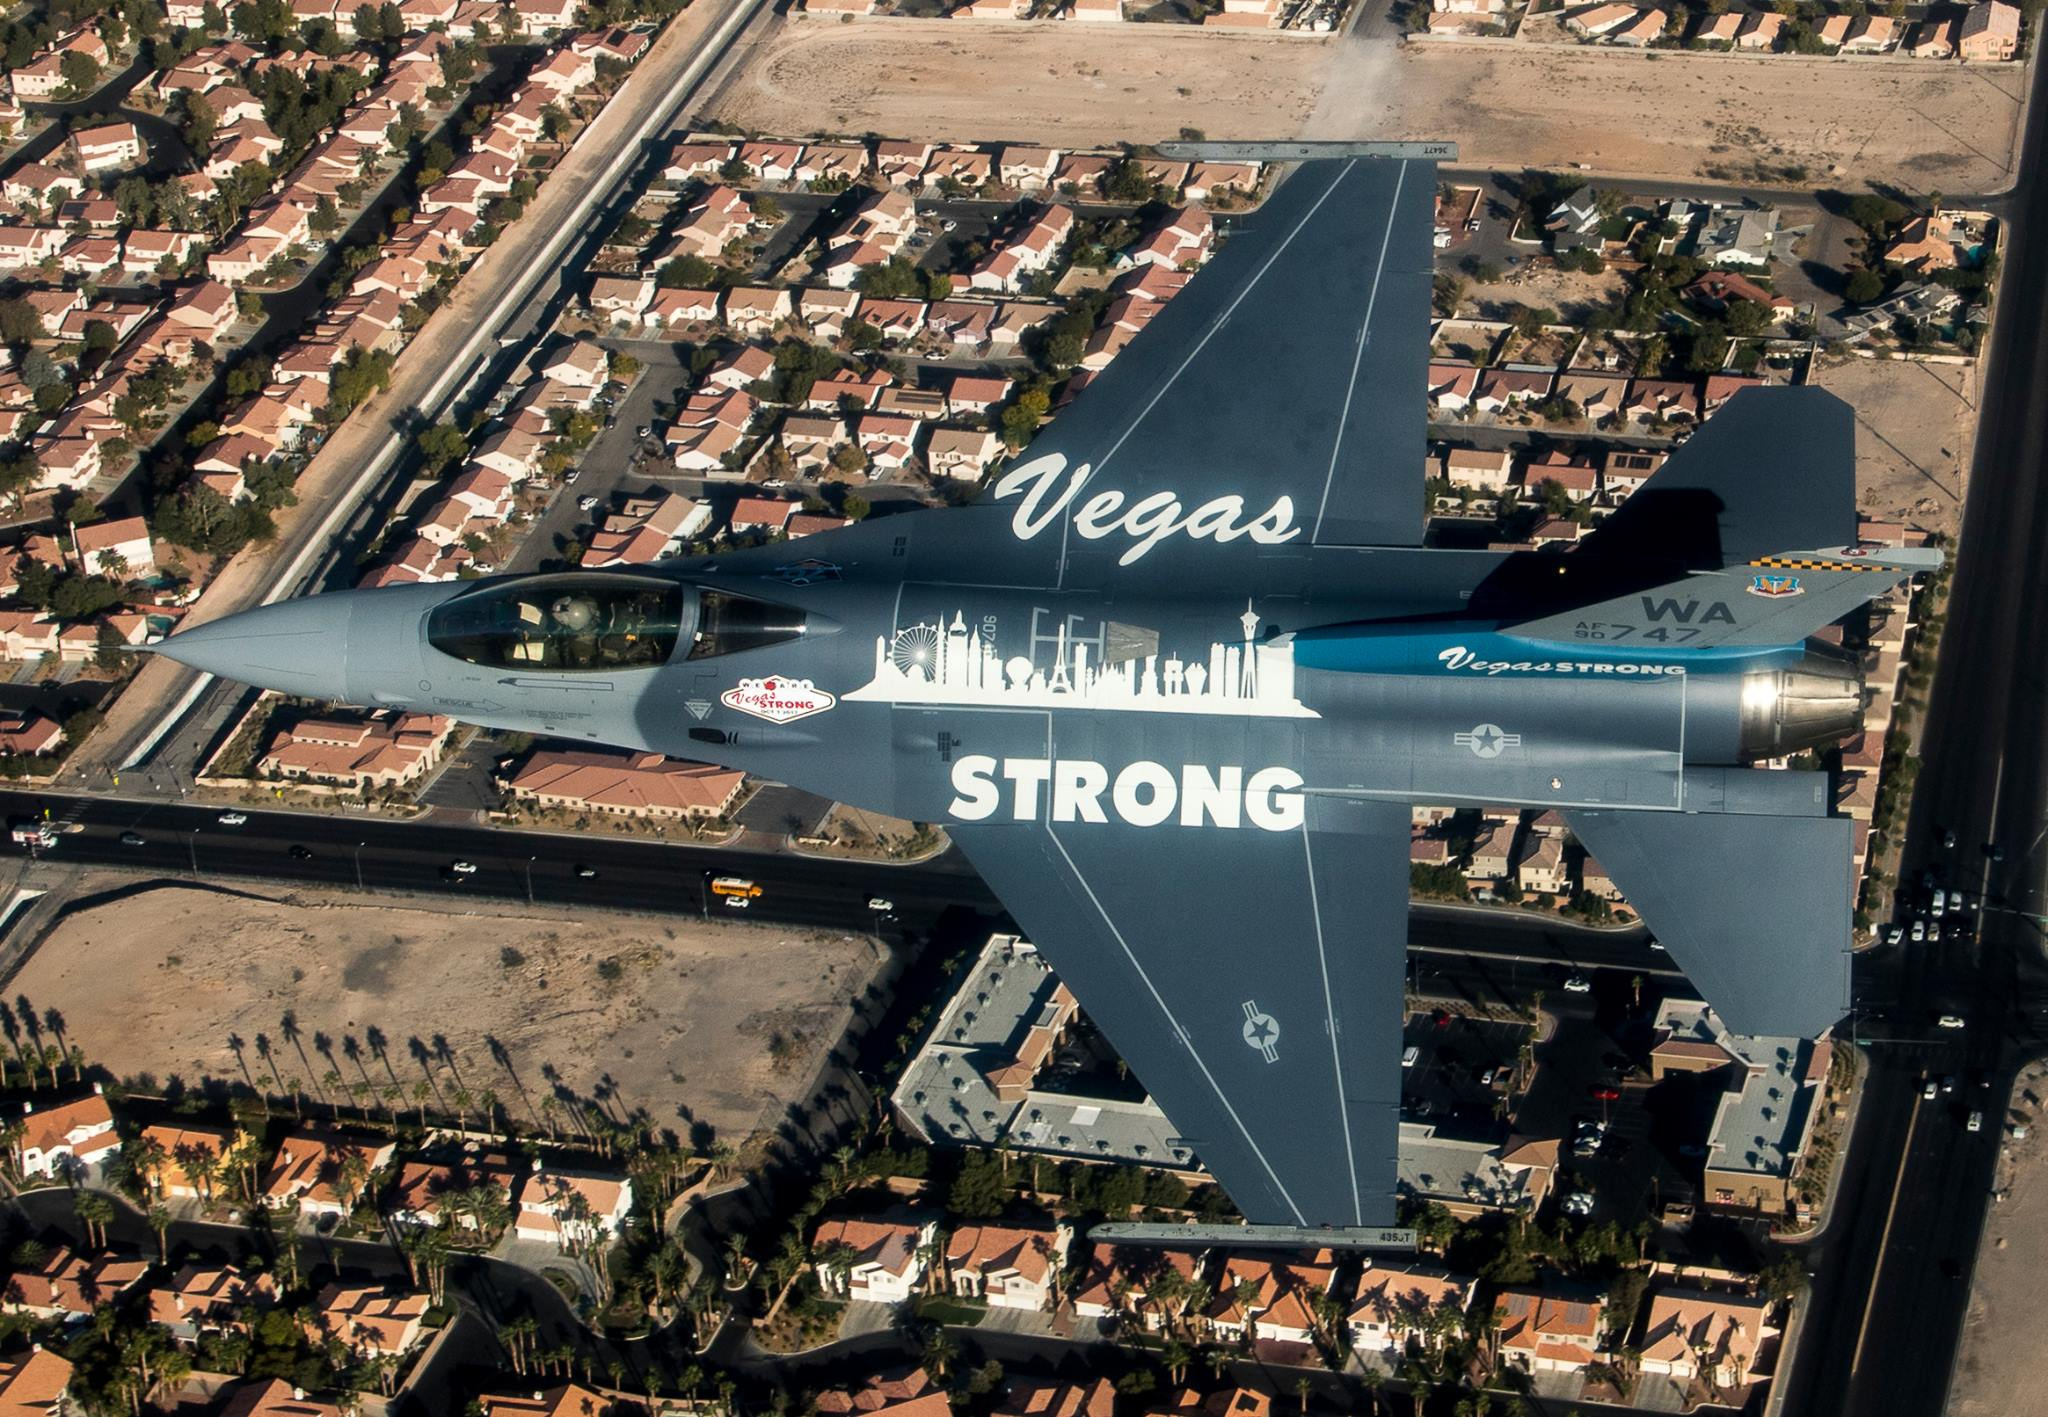 An F-16 Fighting Falcon fromNellis Air Force Base, Nev., soars over Las Vegas Nov. 9, 2017. The Fighting Falcon features a